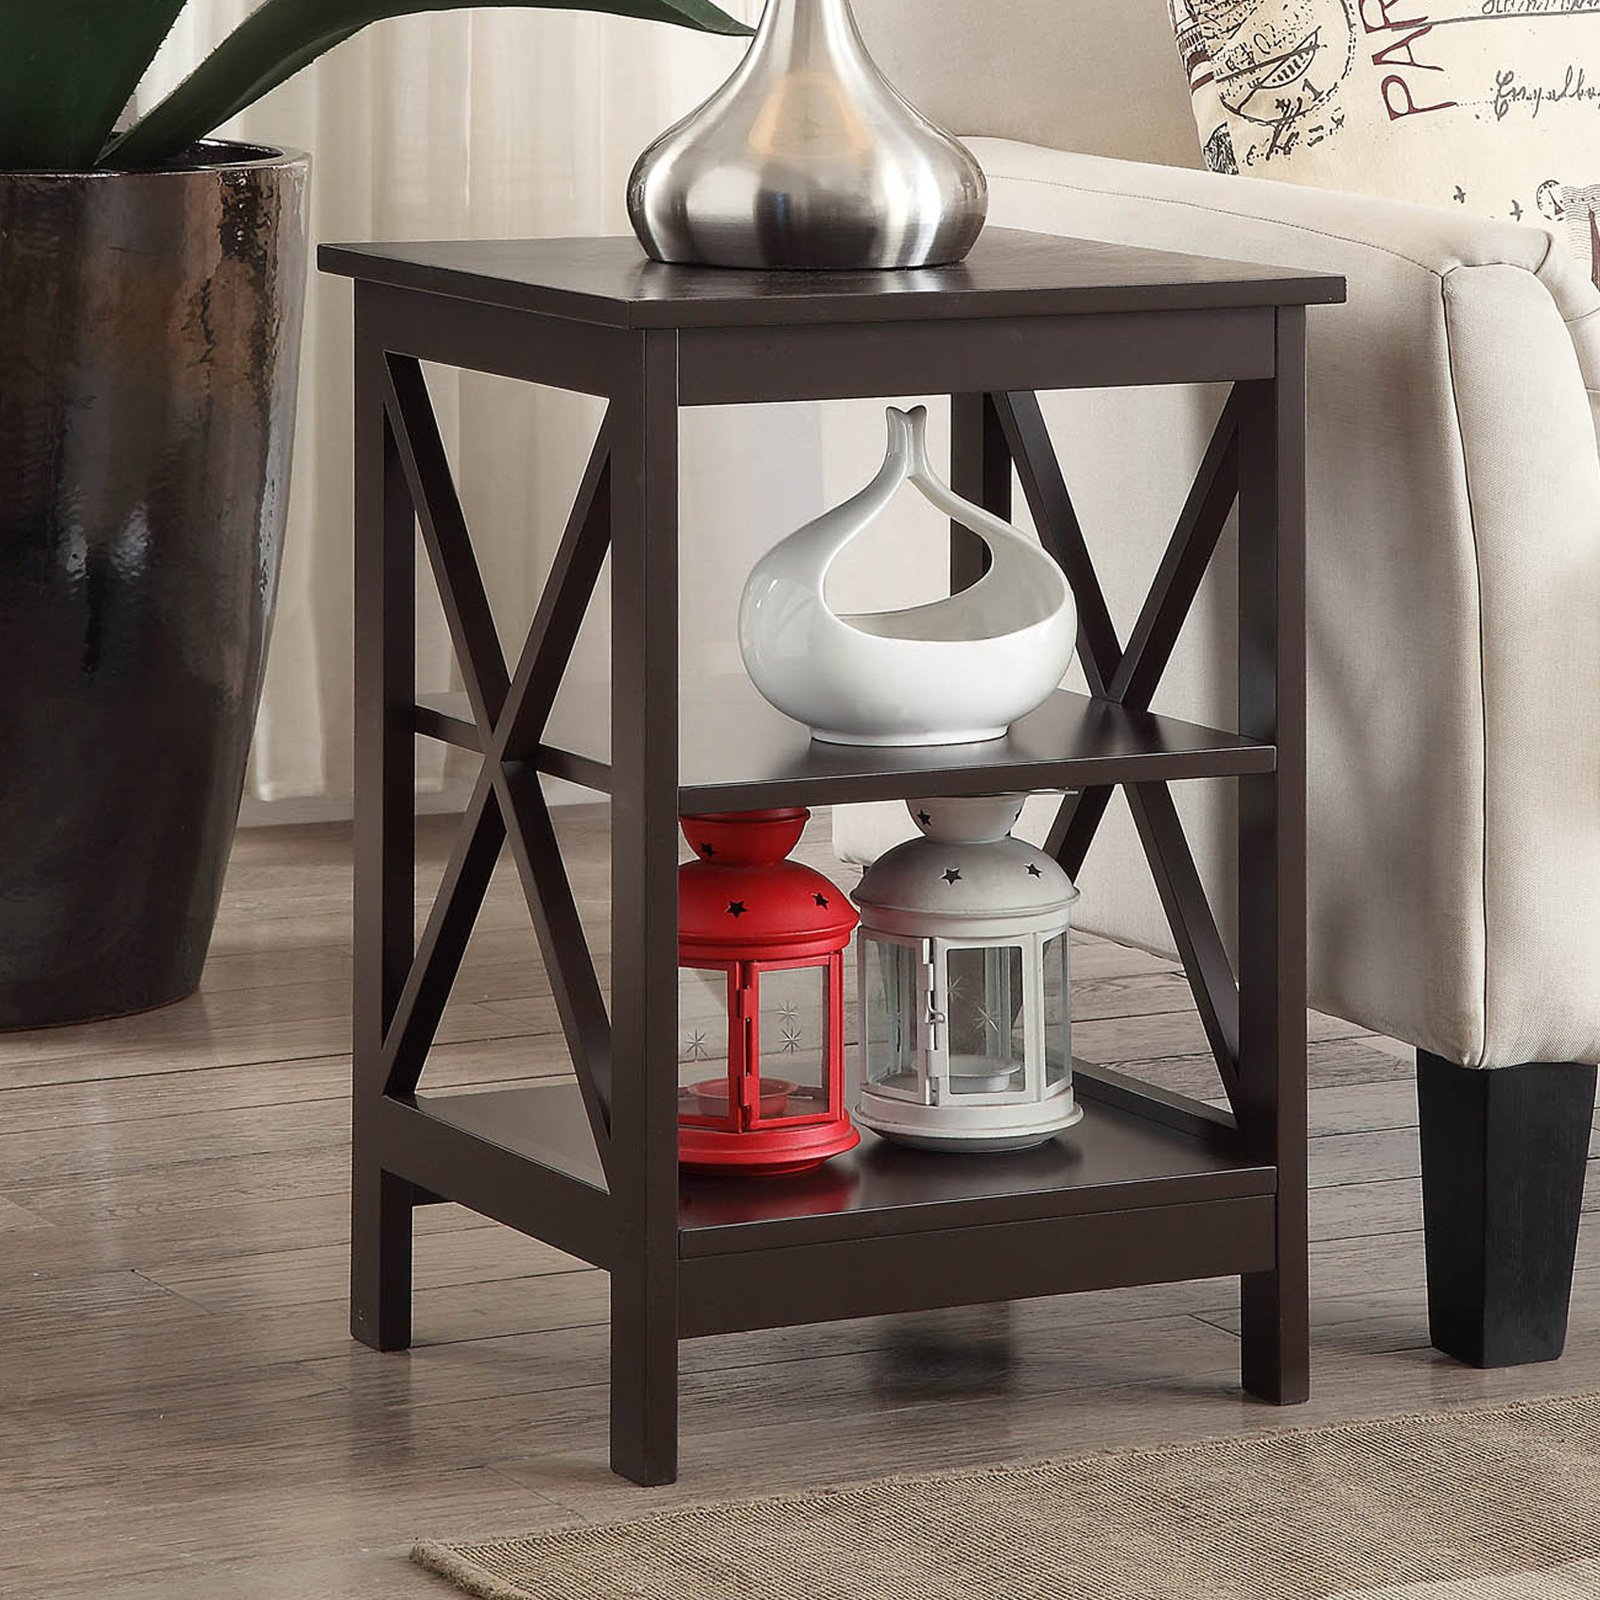 Convenience Concepts Oxford End Table, Multiple Colors by Convenience Concepts Inc